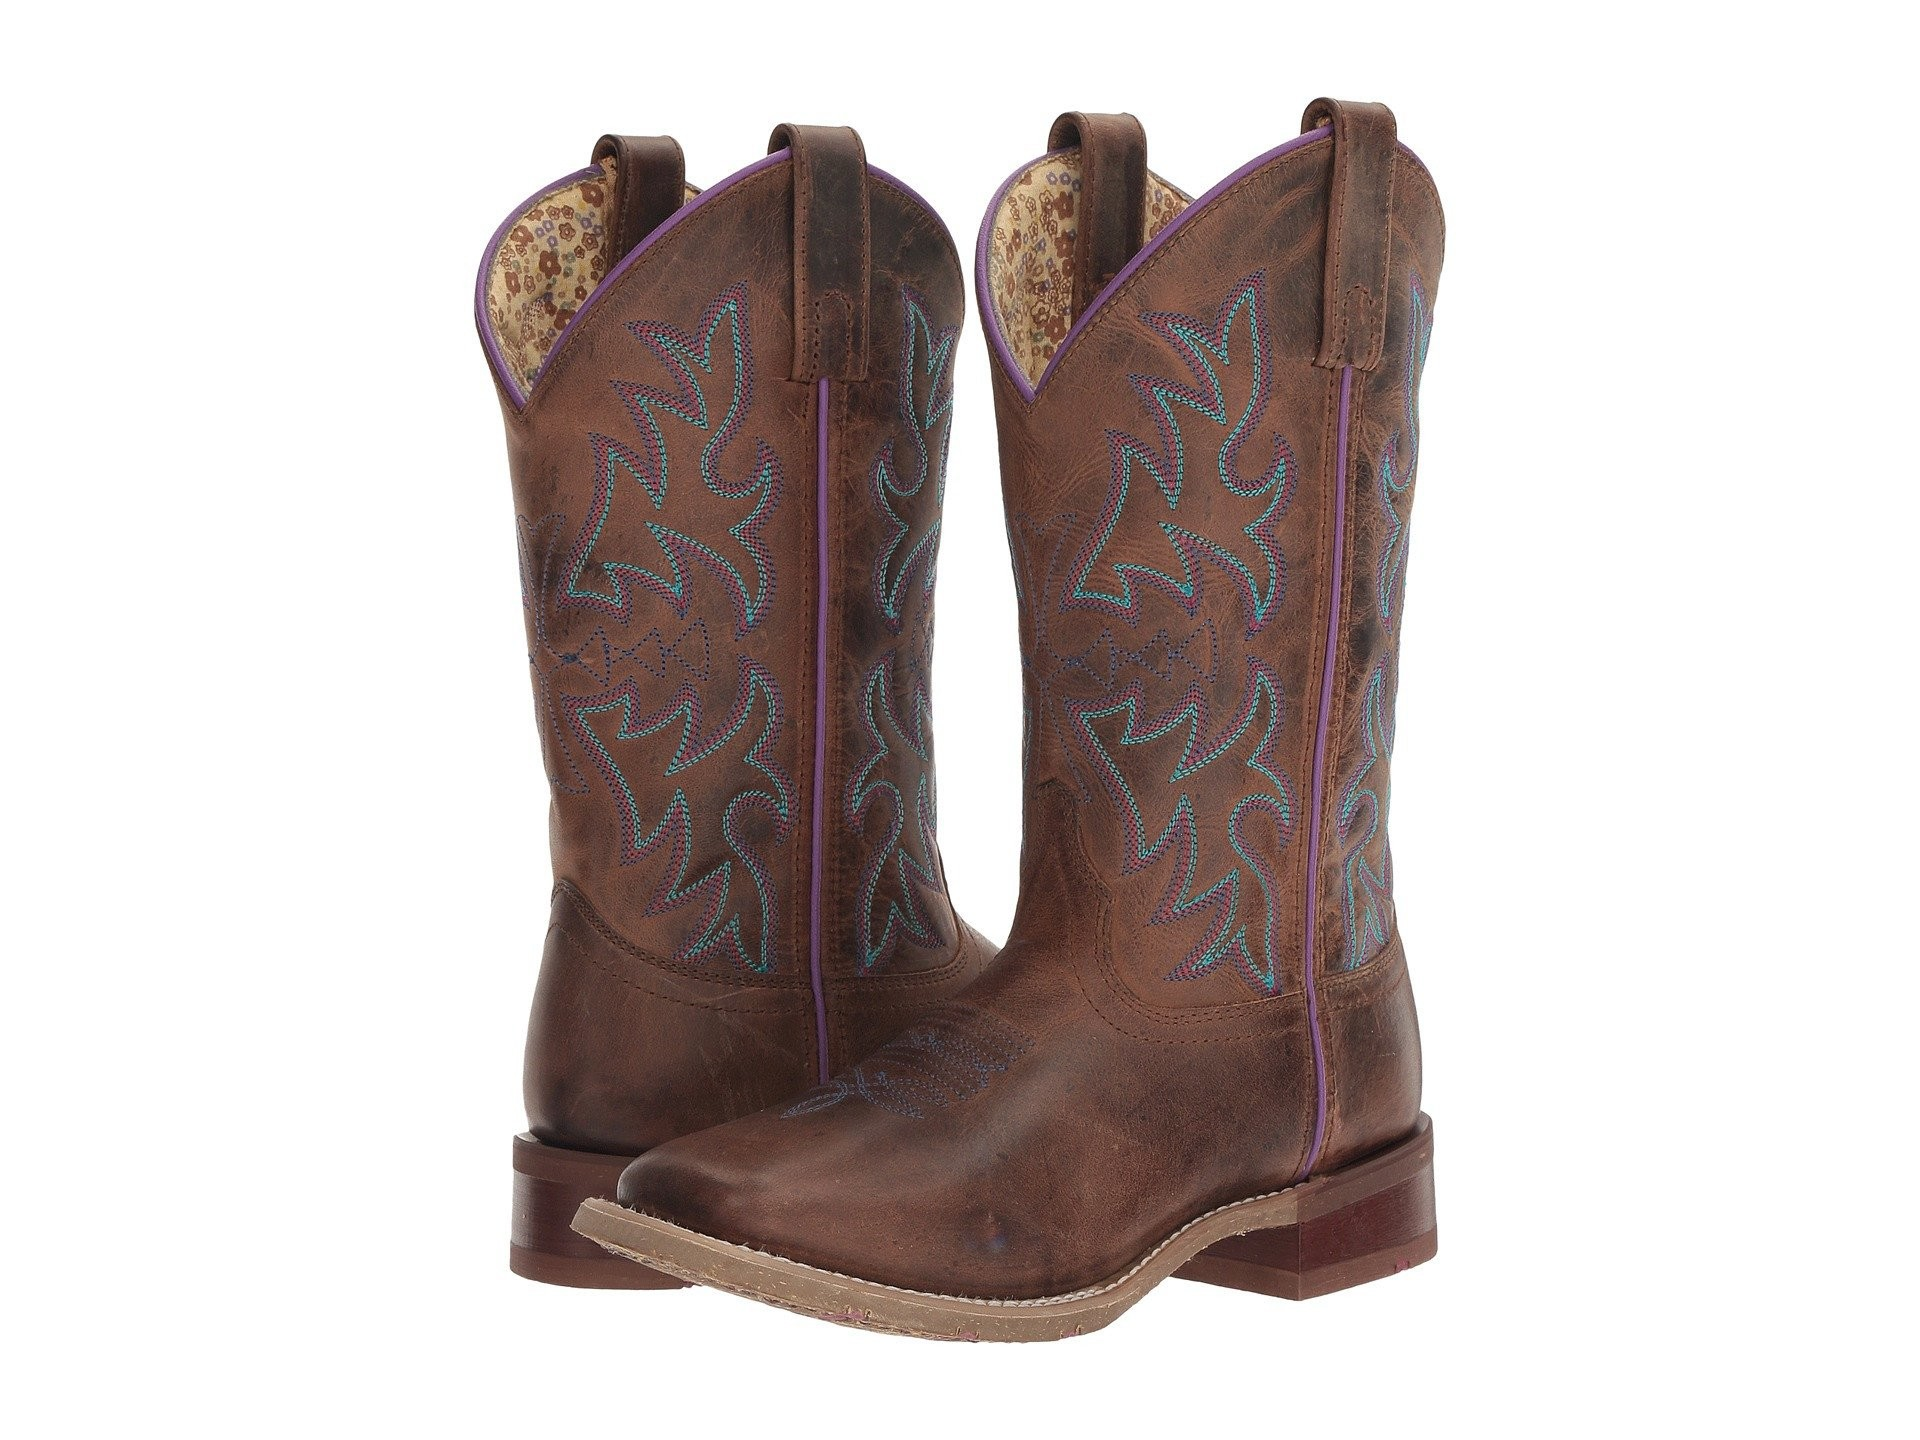 1920x1440 Laredo Women's Rust Ellery Embroidered Leather Cowboy Boots 5654